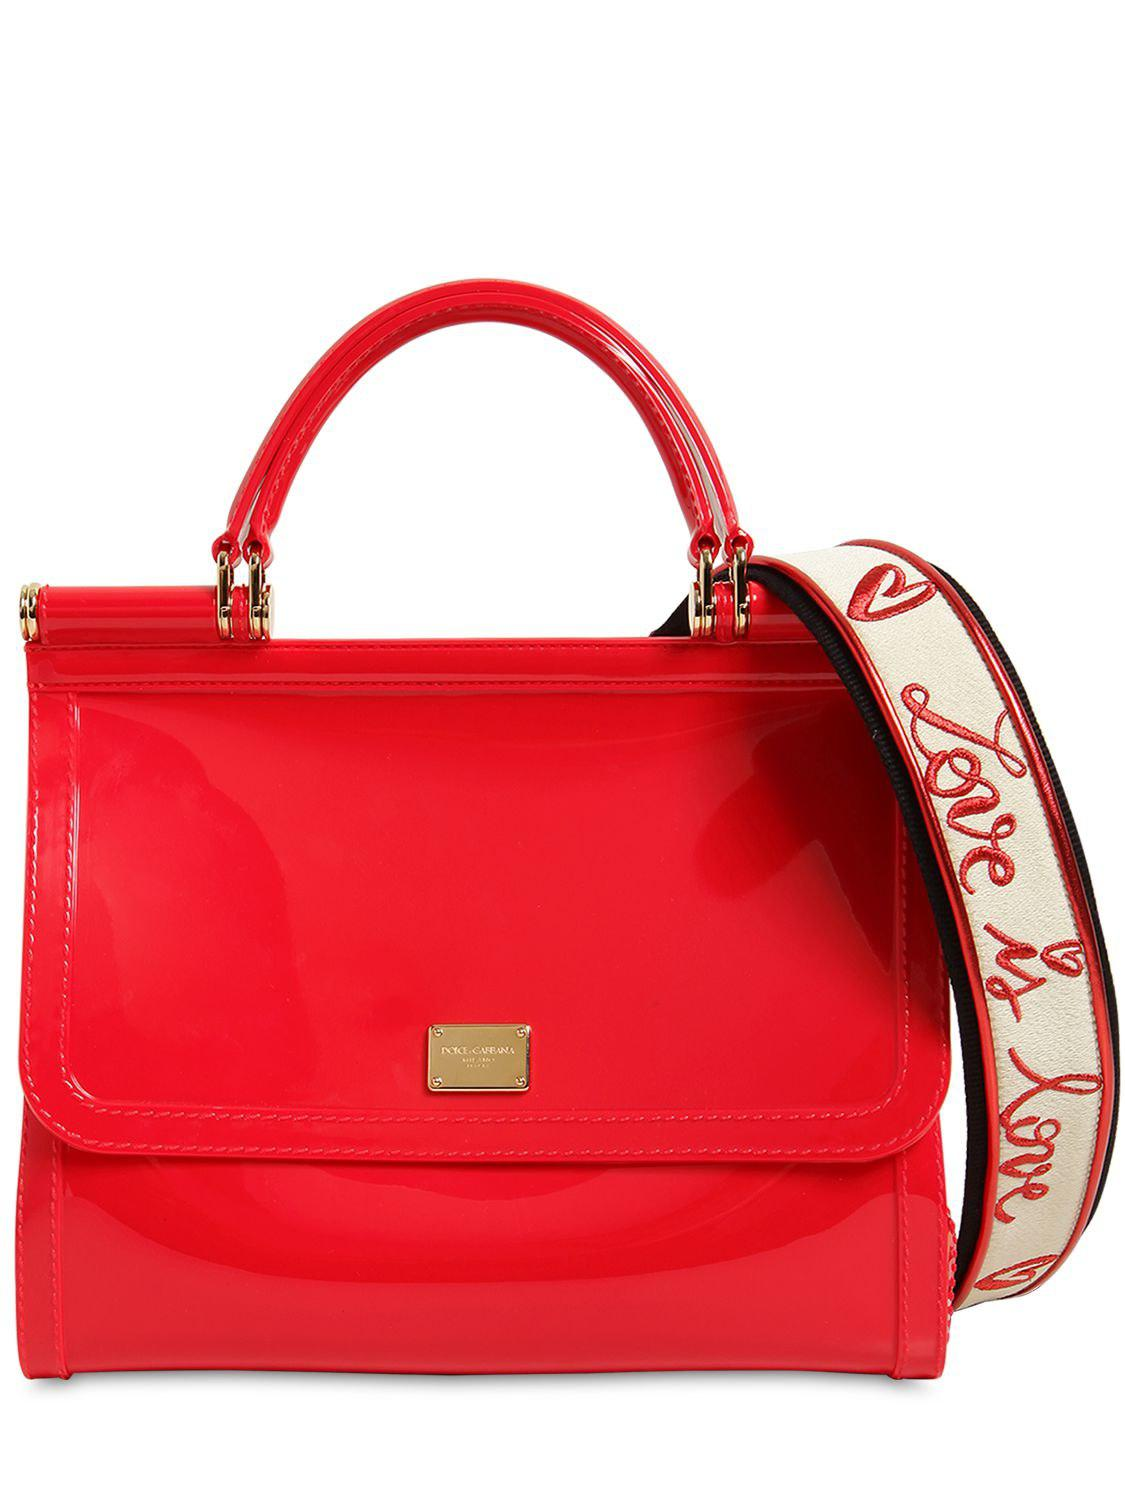 18f3484b1d2 Dolce   Gabbana Sicily Faux Patent Leather Bag in Red - Lyst